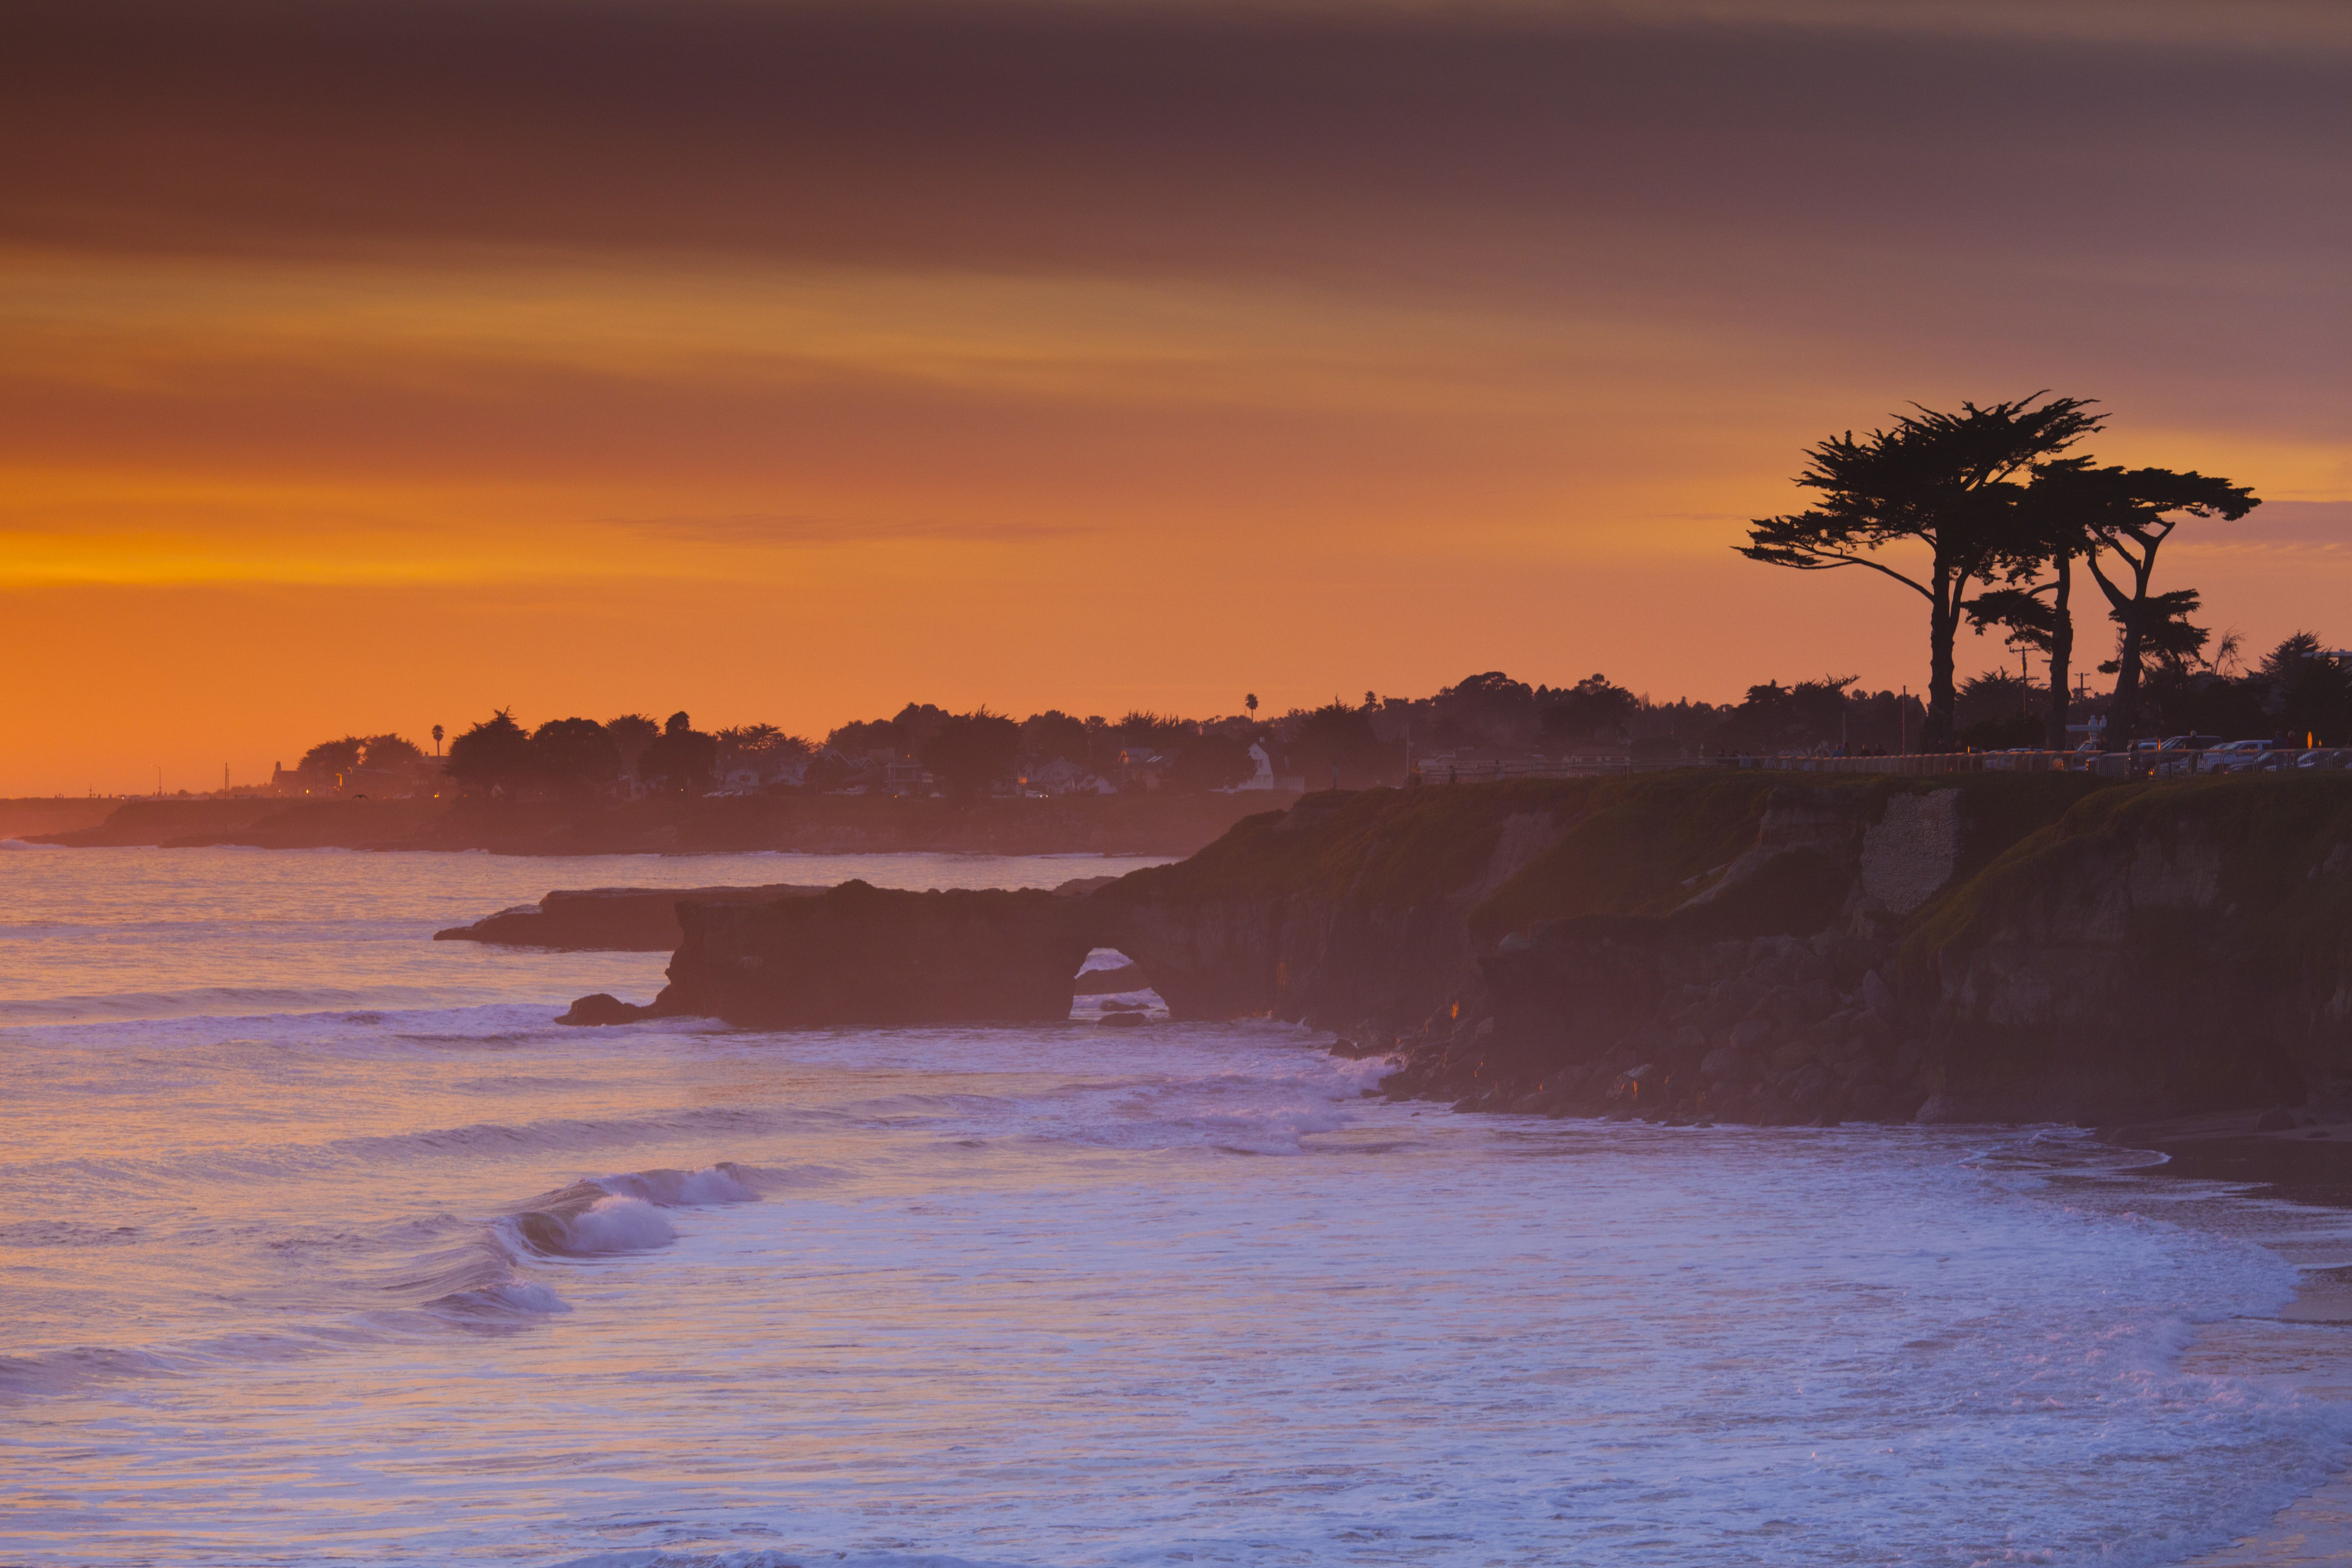 Things to Do in Santa Cruz - Top Sights and Activities